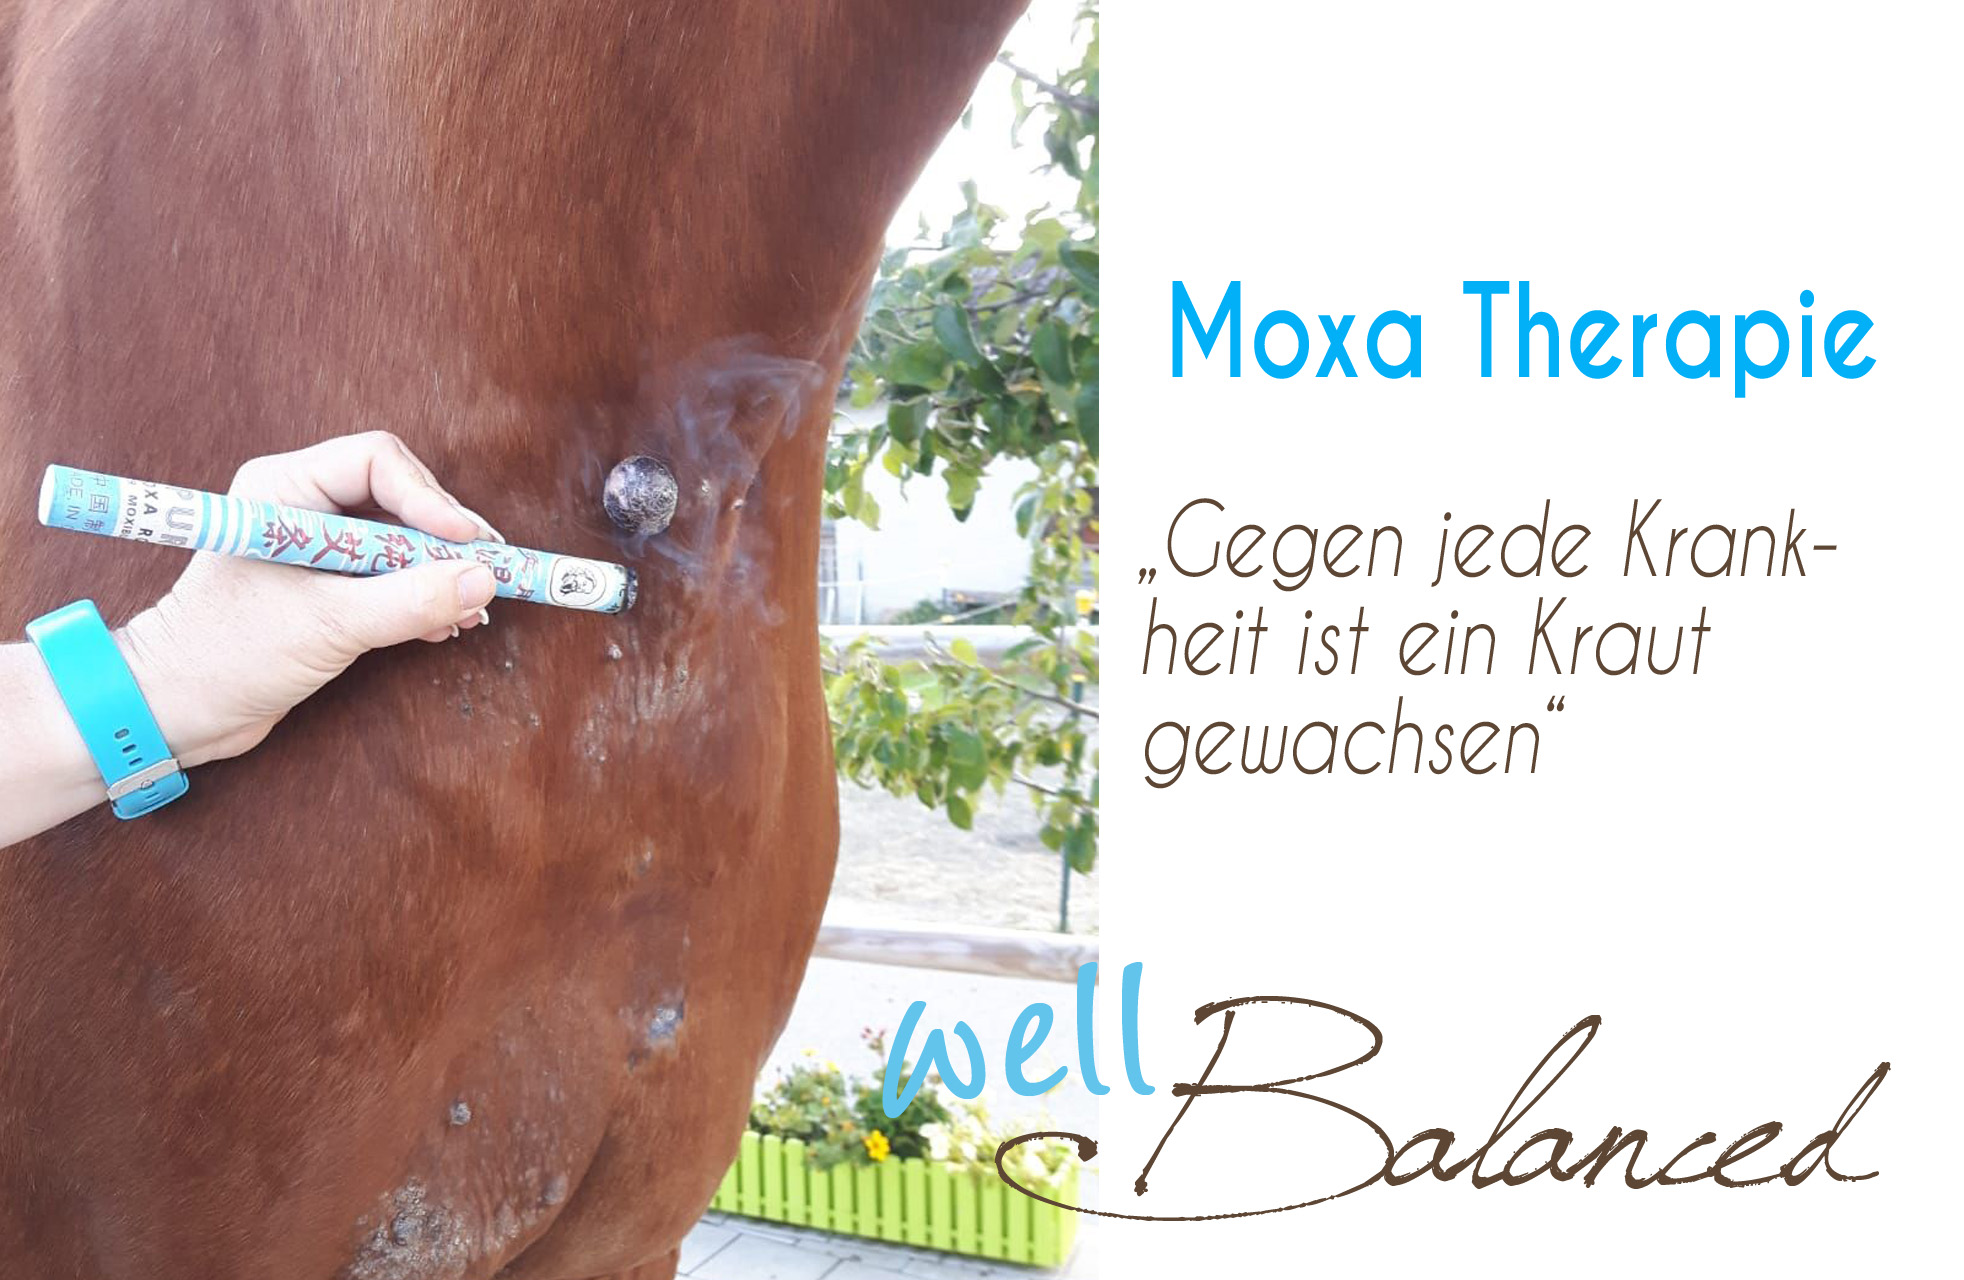 You are currently viewing Die Moxatherapie in der TCM